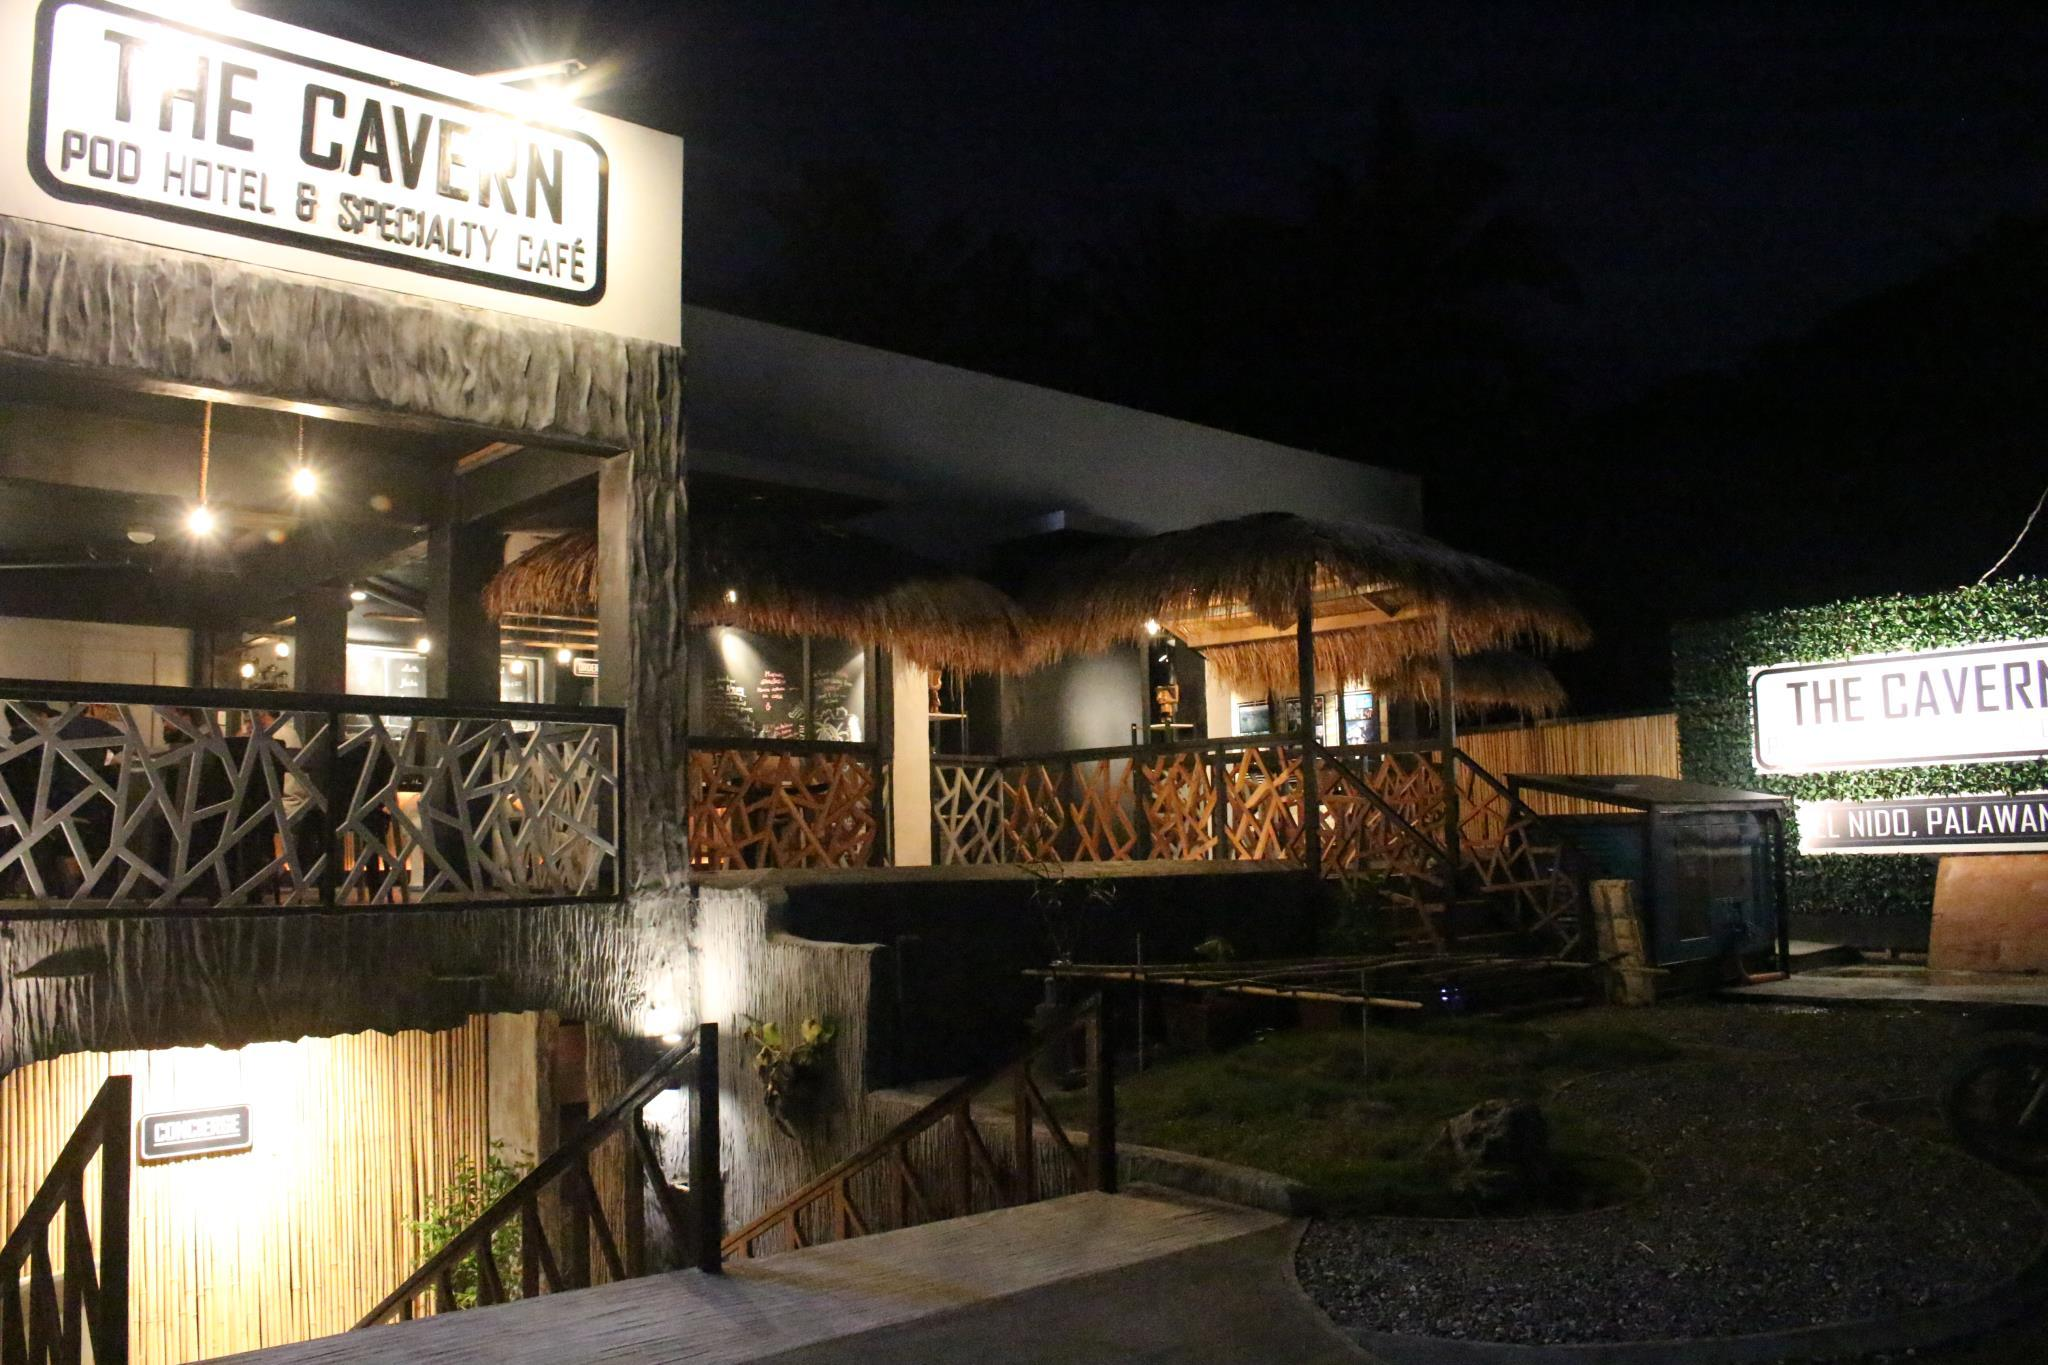 The Cavern Pod Hotel And Specialty Cafe